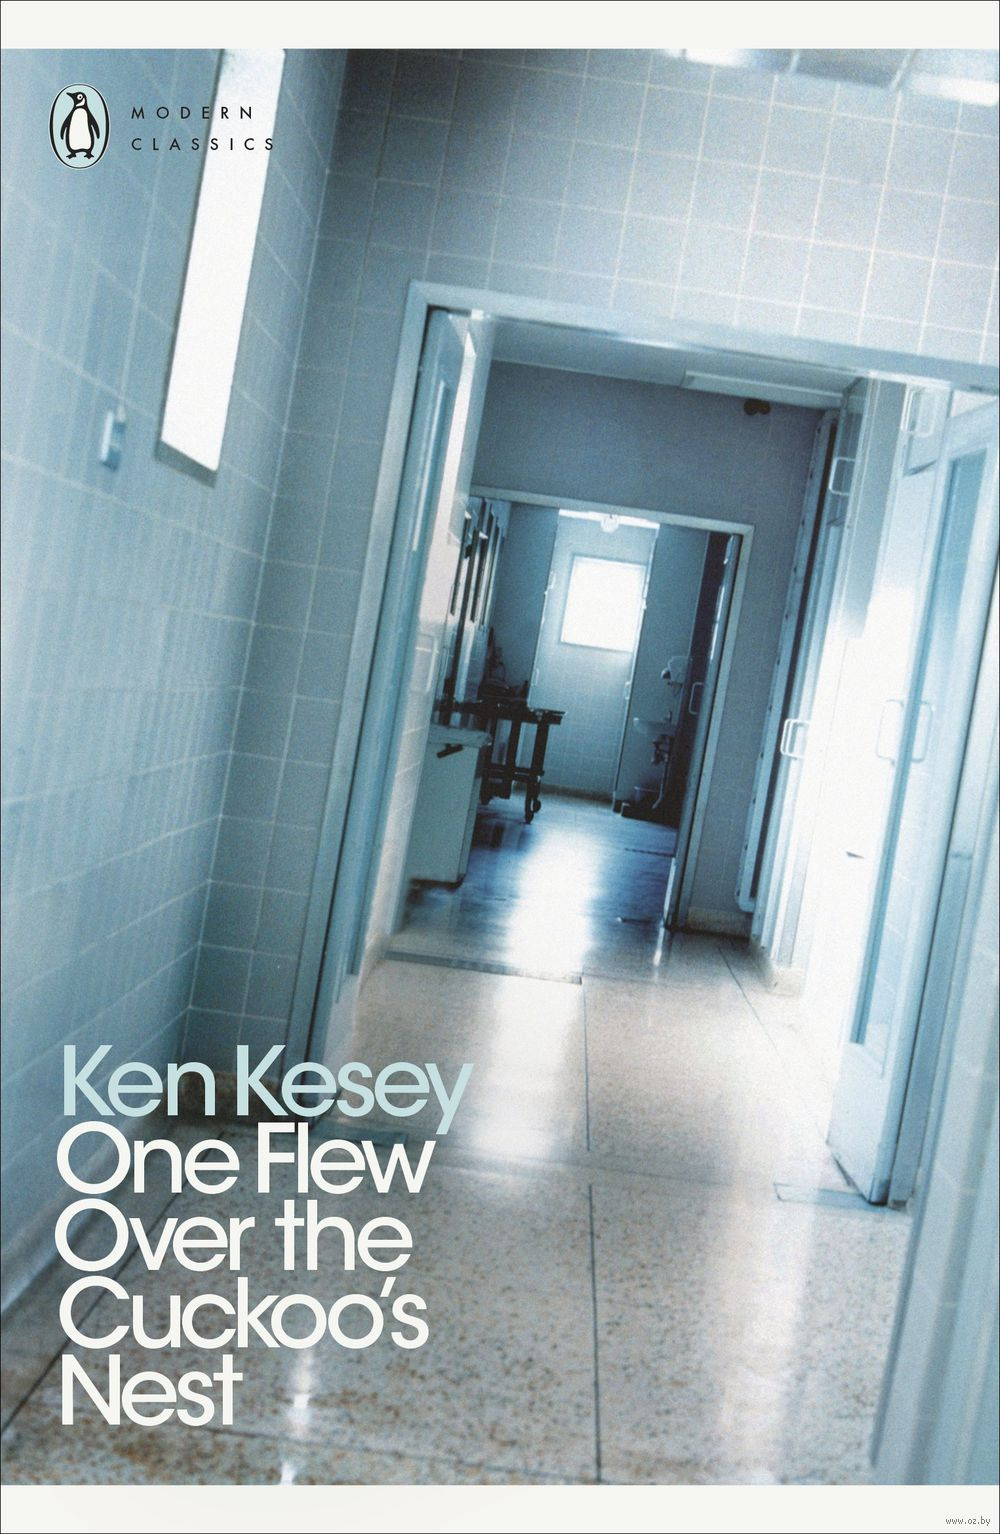 the world of nurse ratched in the novel one flew over the cuckoos nest by ken kesey One flew over the cuckoo's nest ken kesey's 1962 novel has left an indelible mark on the when mcmurphy rips nurse ratched's tightly starched uniform and.